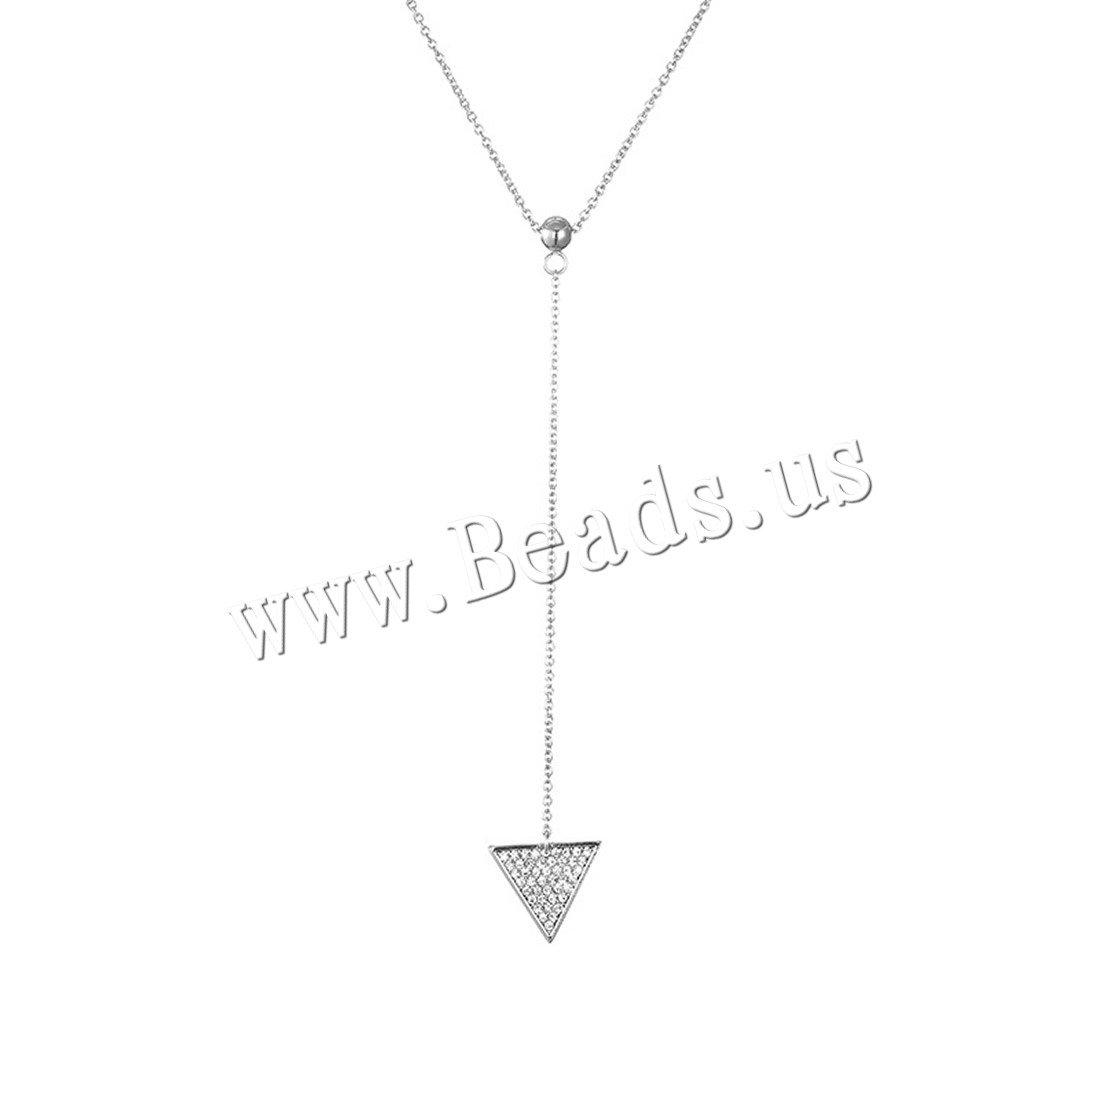 Buy Zinc Alloy Jewelry Necklace iron chain 5cm extender chain Triangle platinum color plated oval chain & woman & rhinestone lead & cadmium free 15x17mm Sold Per Approx 17.5 Inch Strand